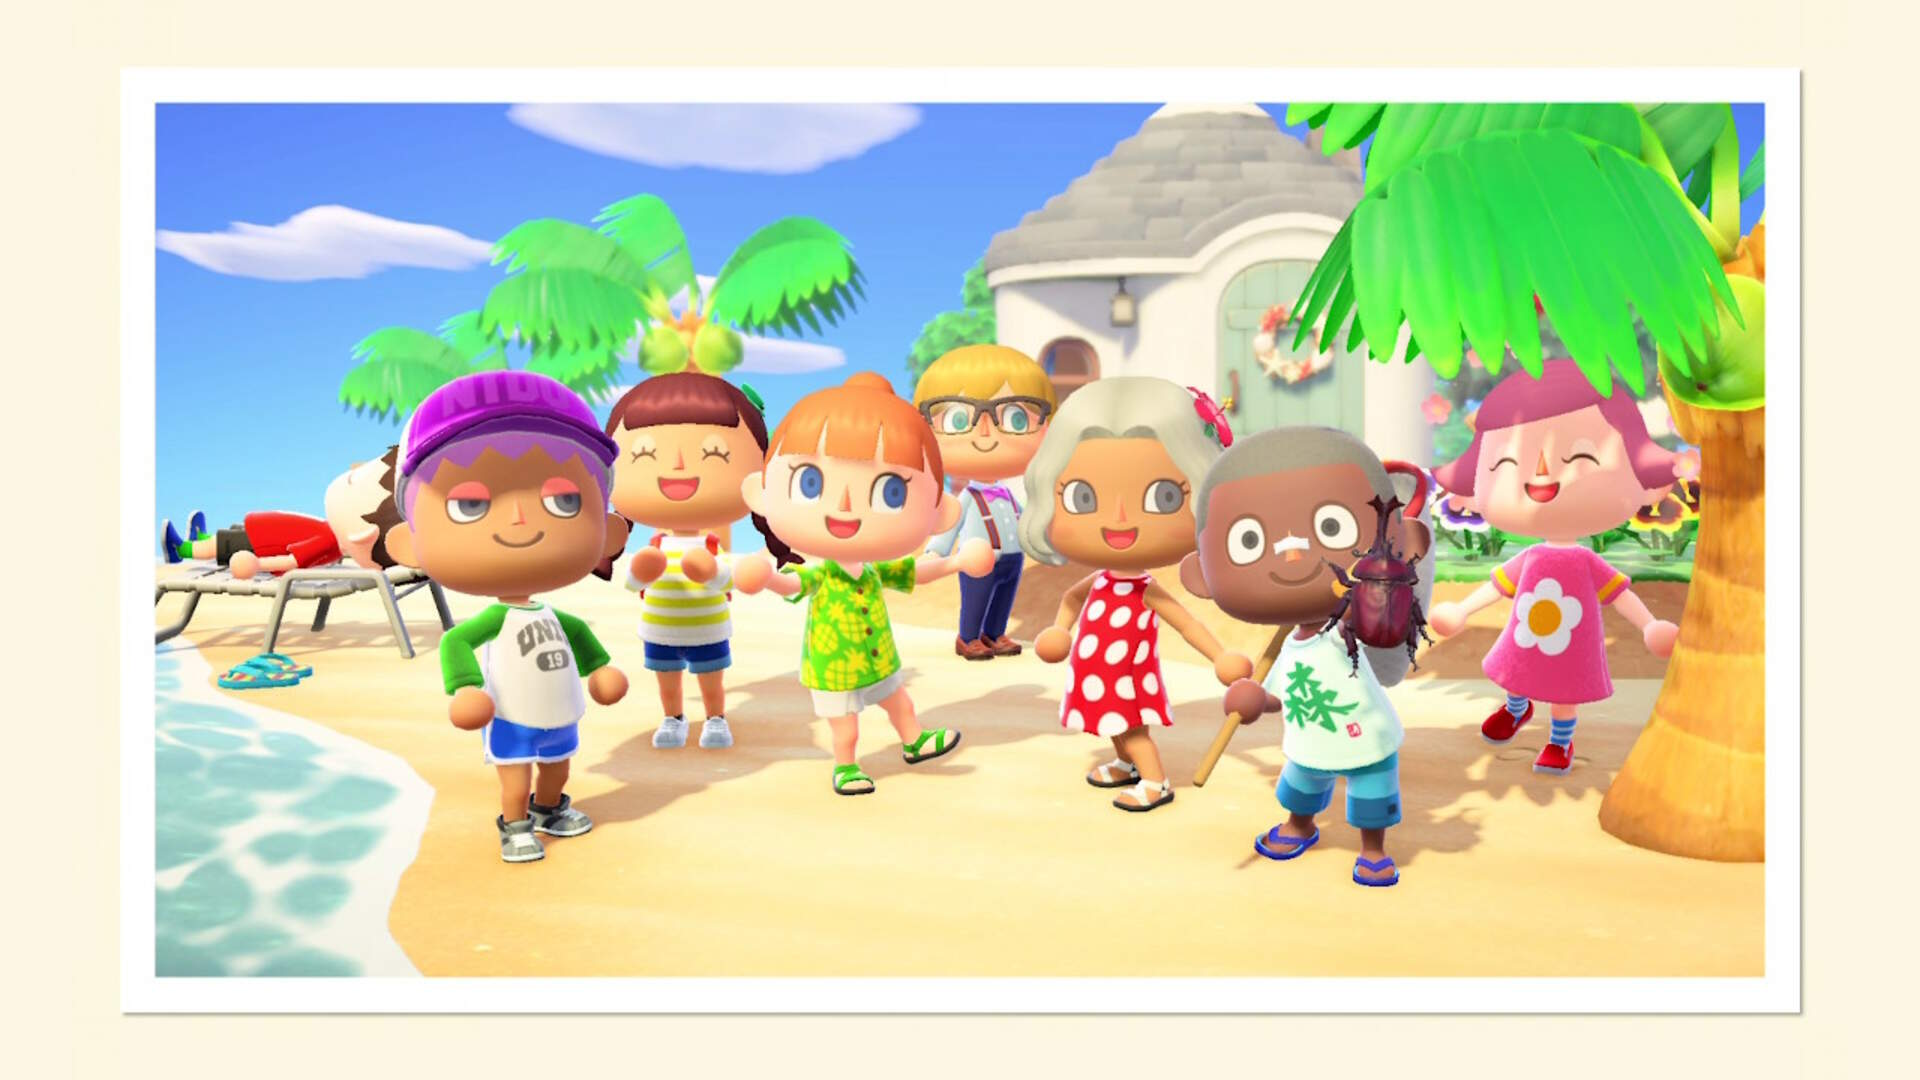 Animal Crossing: New Horizons' Opening Weekend Was Amazingly Wholesome Fun With Friends